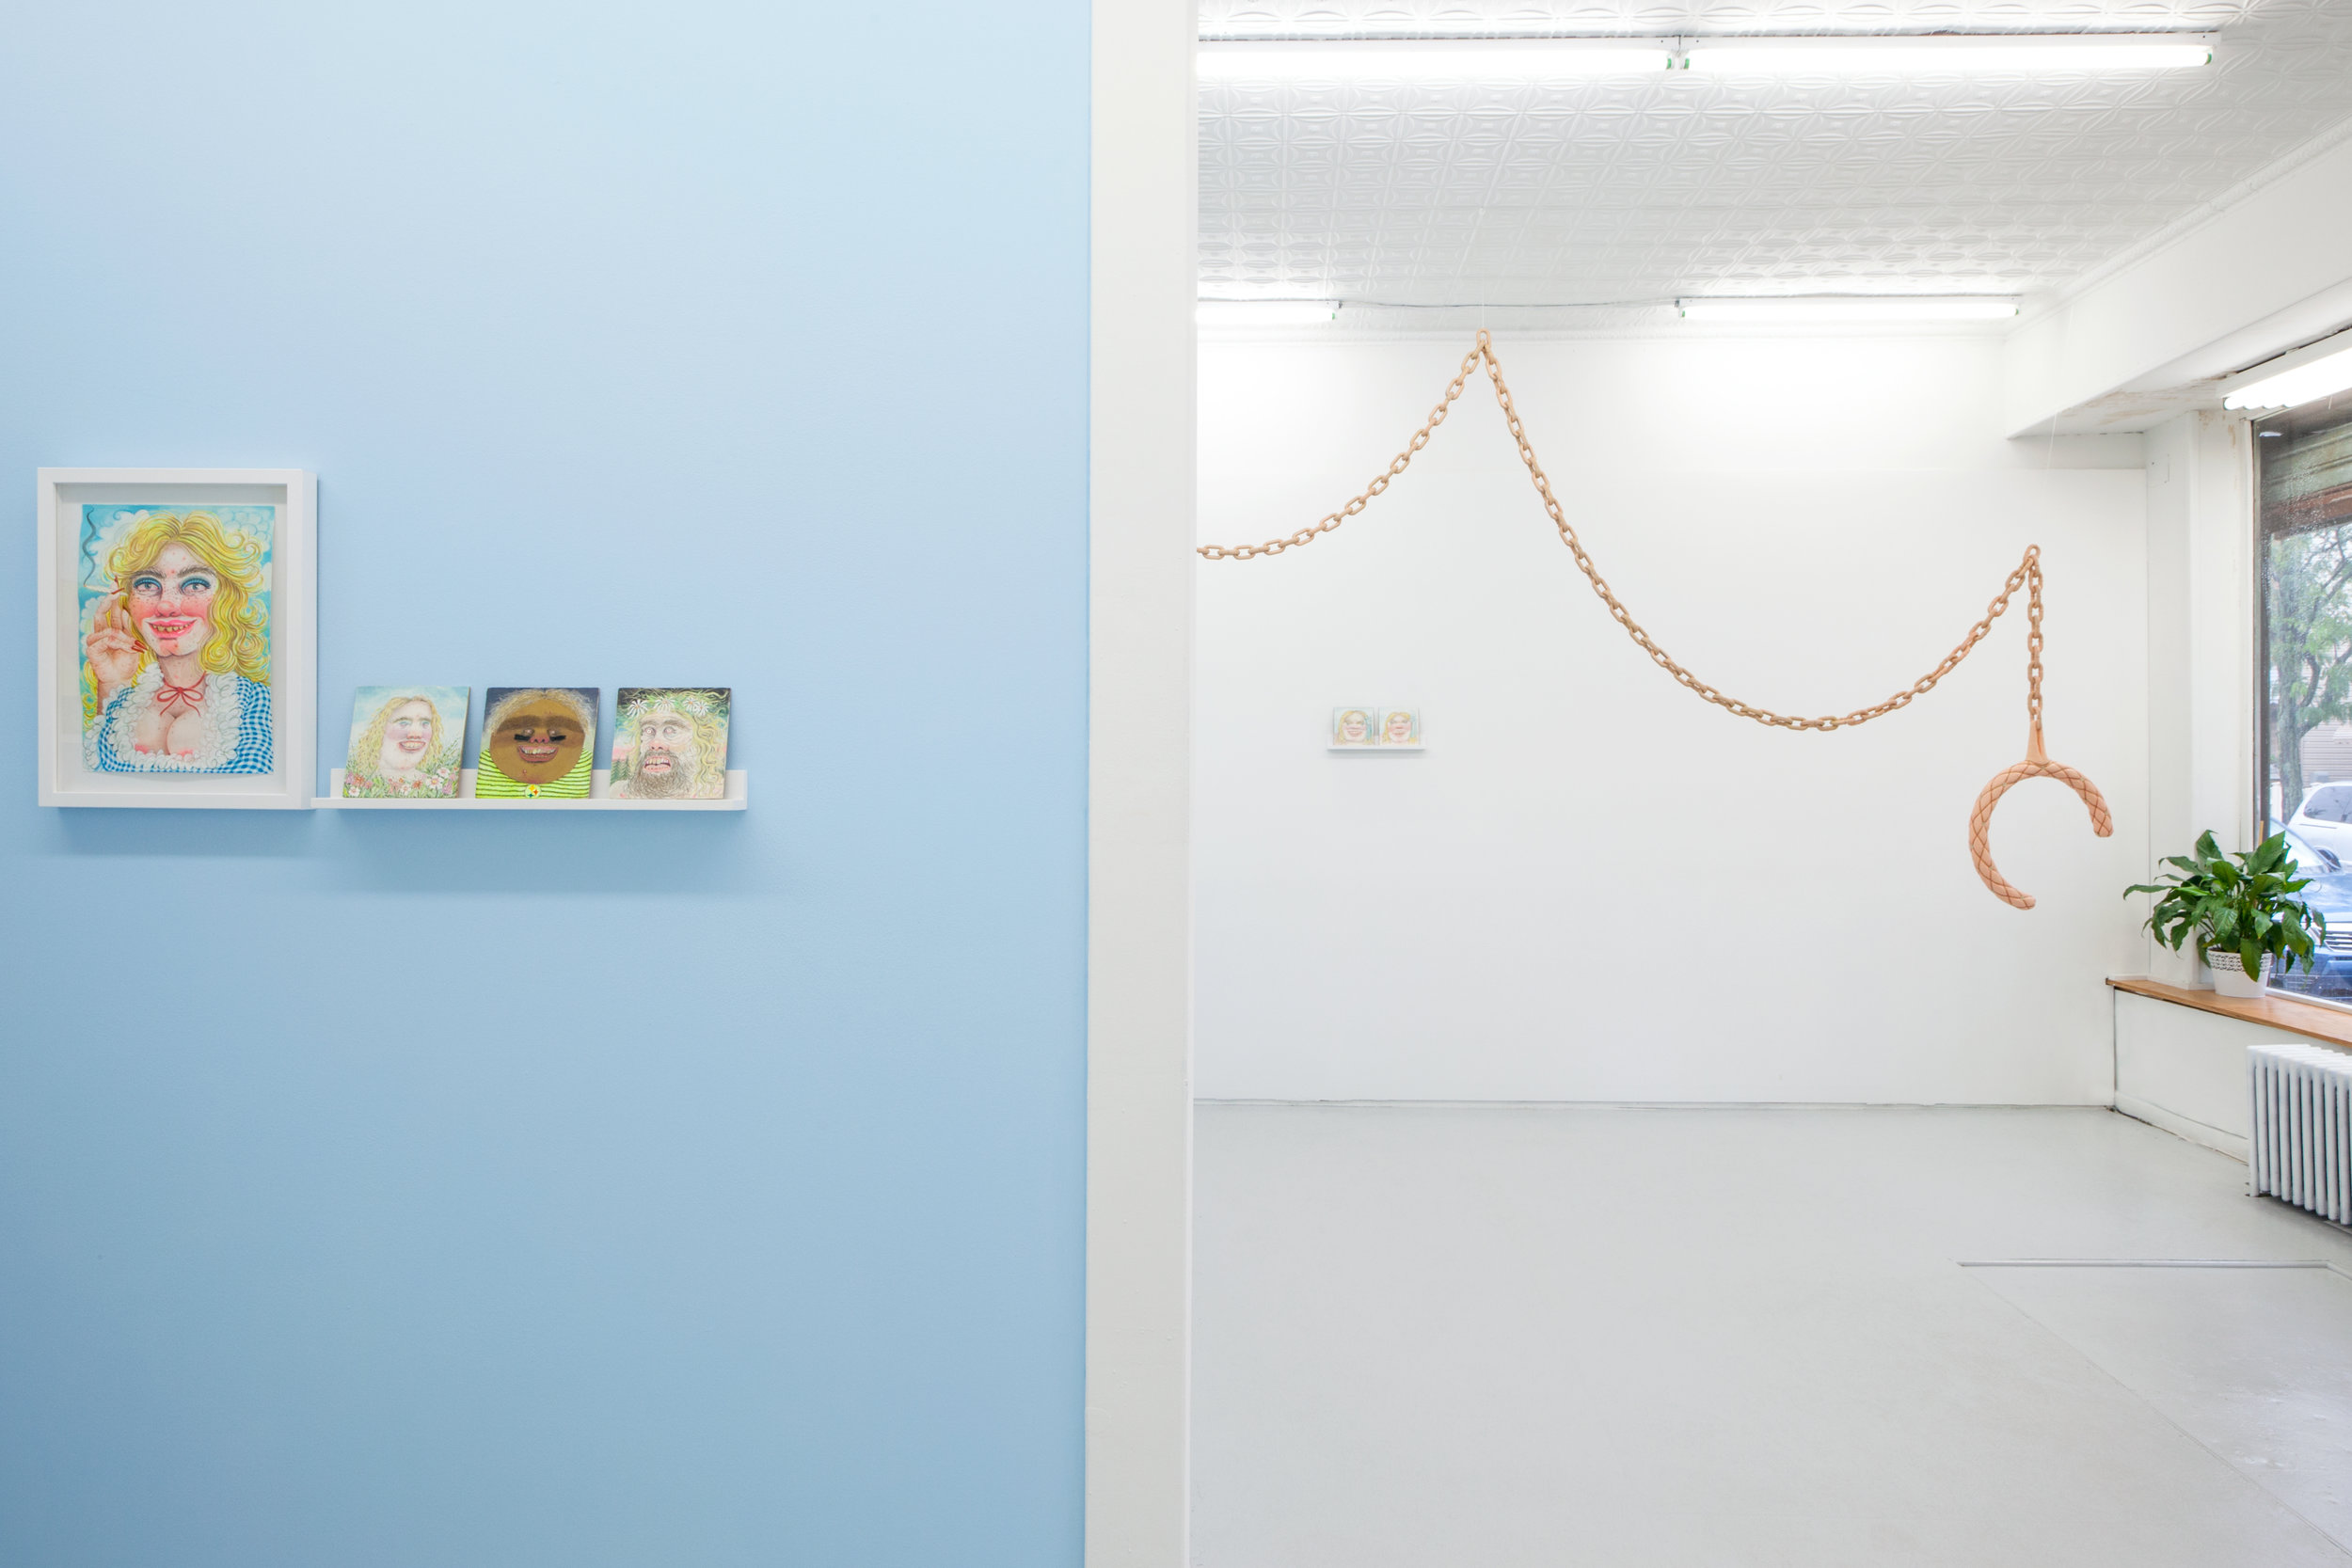 Mrs-Three's_Company_installation_view-04.jpg